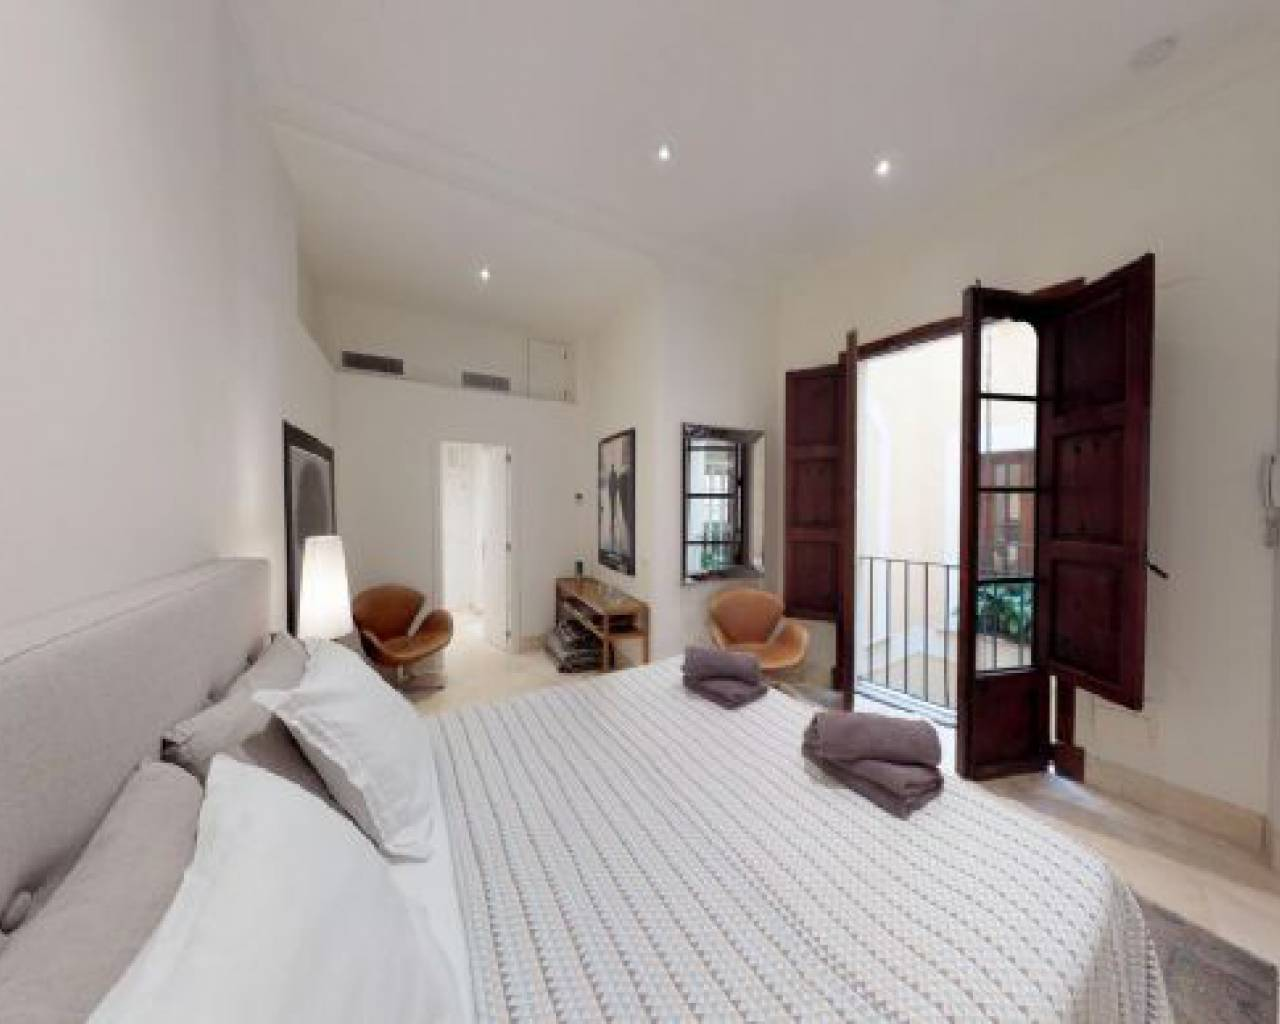 Townhouse in sale in Old town Of Palma